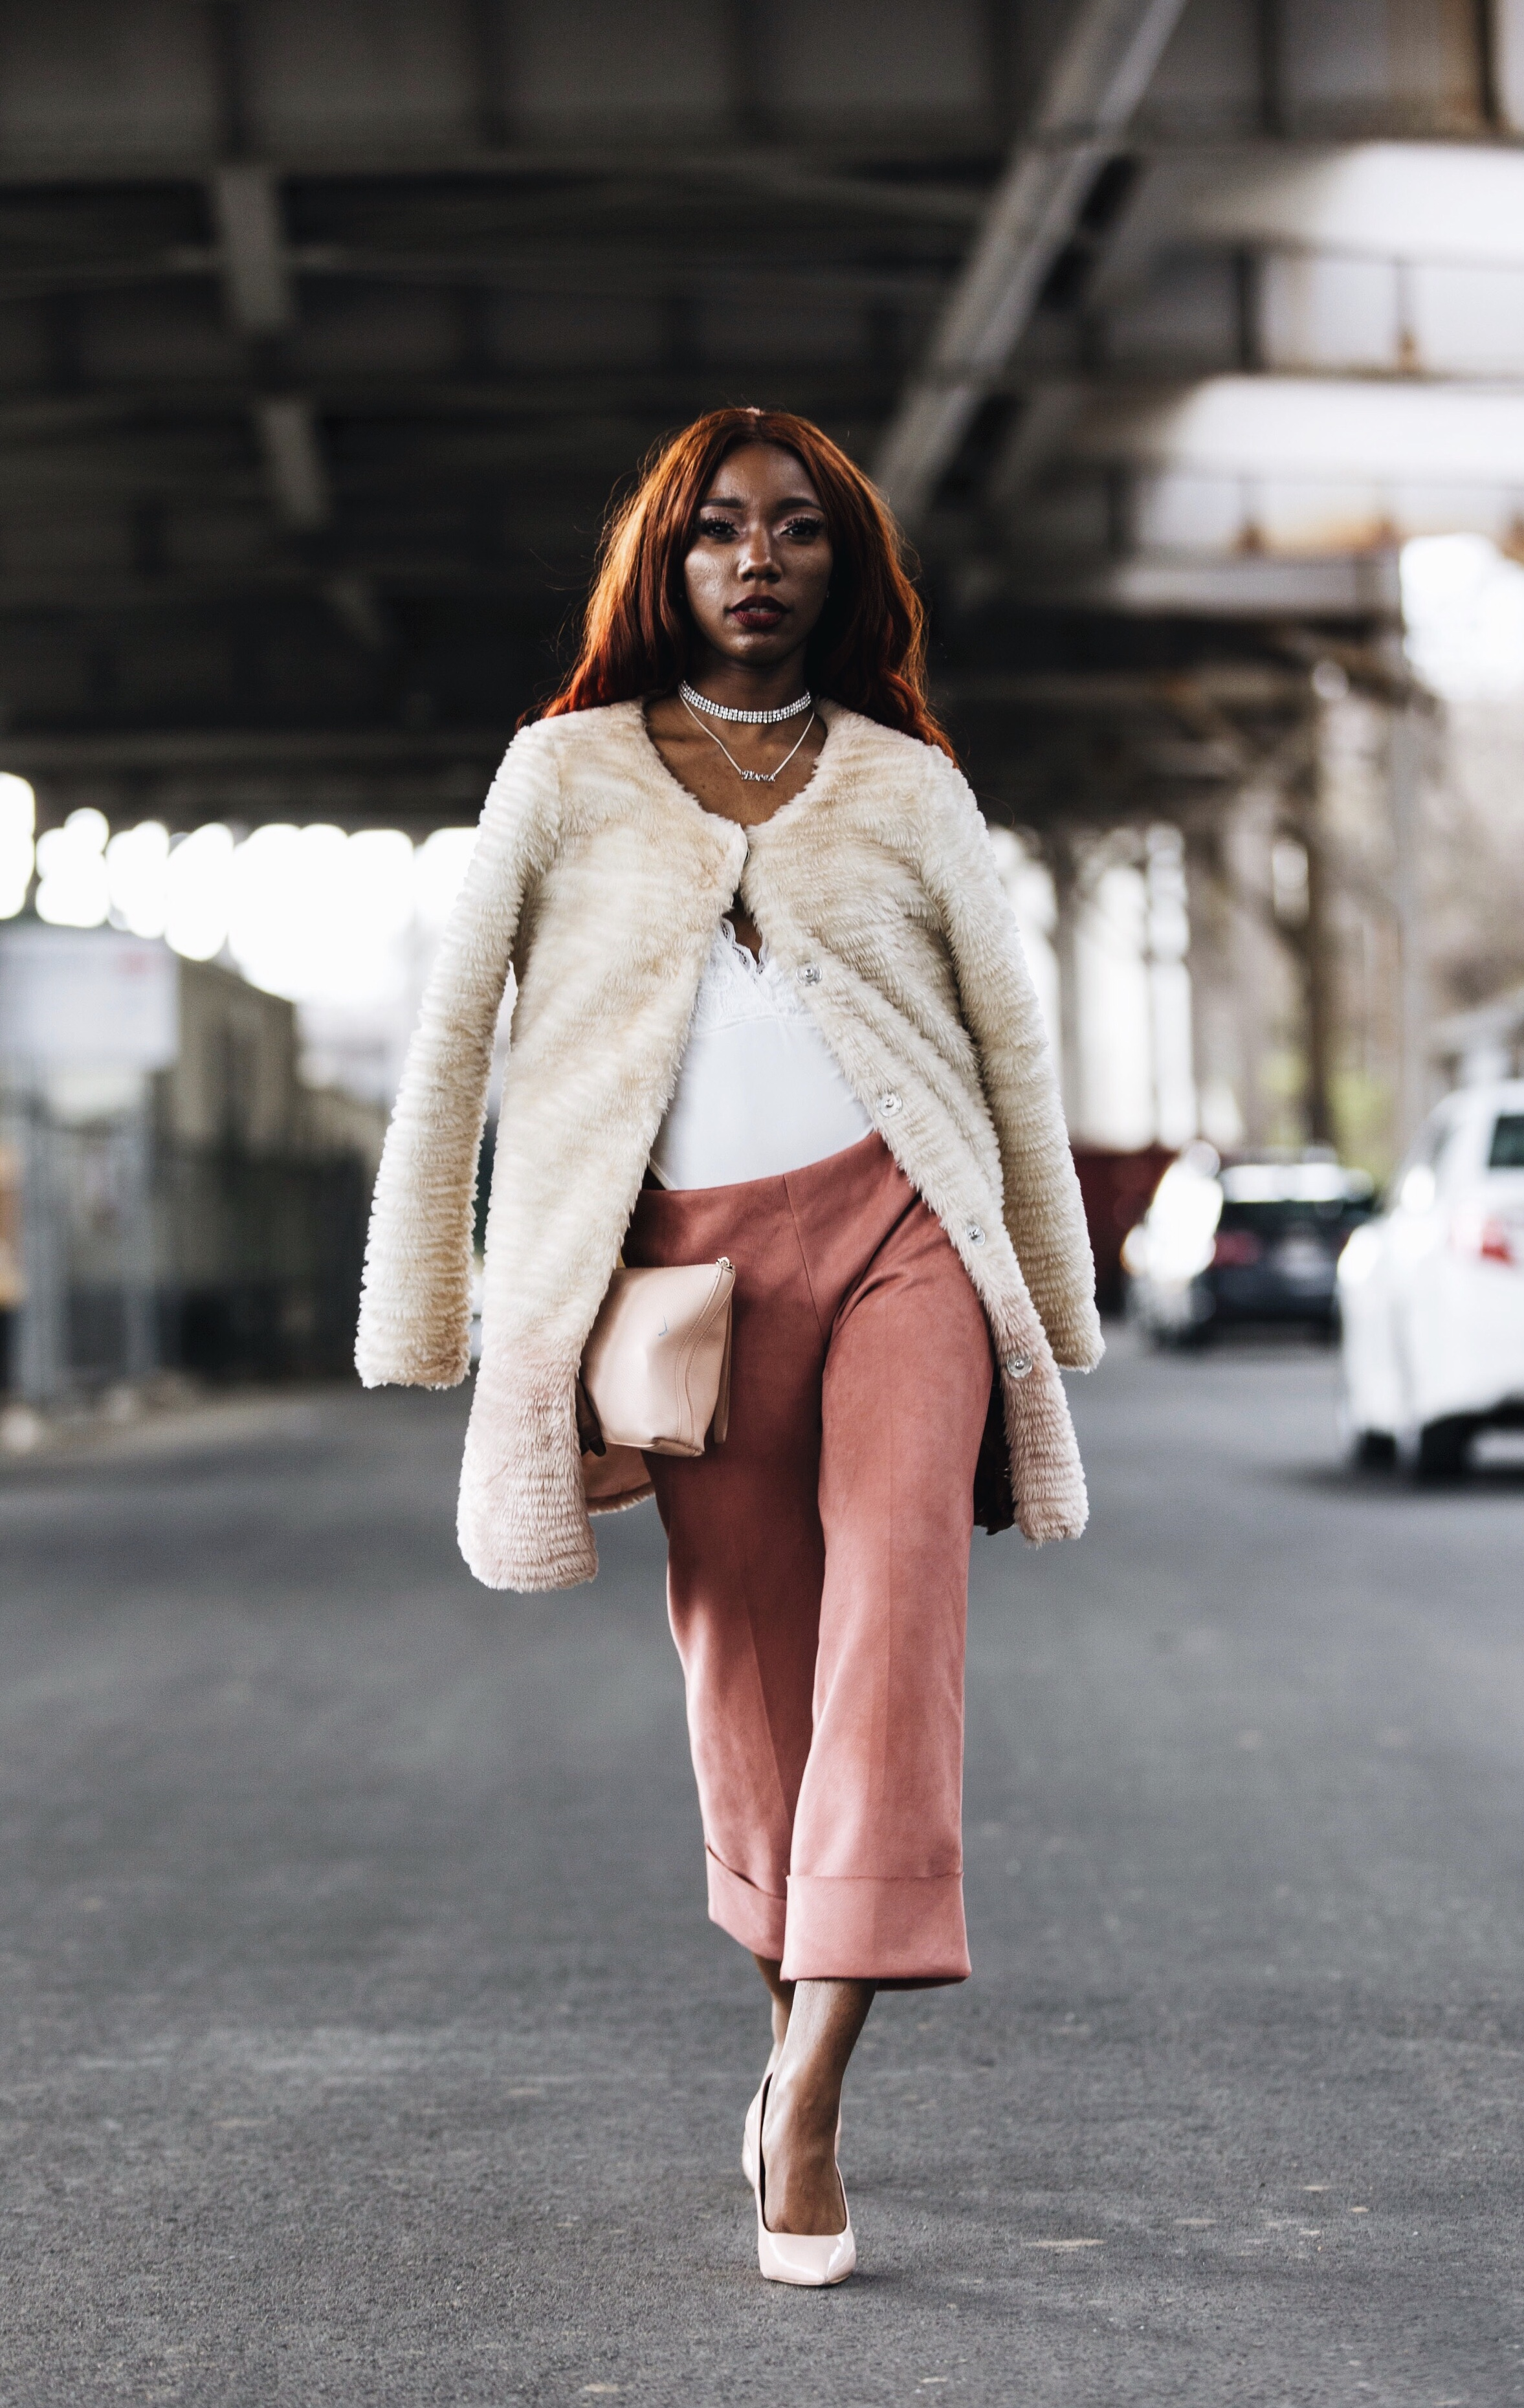 Image of theoriginaljcg model and founder of Marz Enterprise modeling agency wearing pink suede trousers, white top, fur jacket, and light pink heels captured by photographer The Creative Gentleman for Fashion Bomb Daily. This image was taken during the Conversations with Claire brunch event in Washington, D.C.